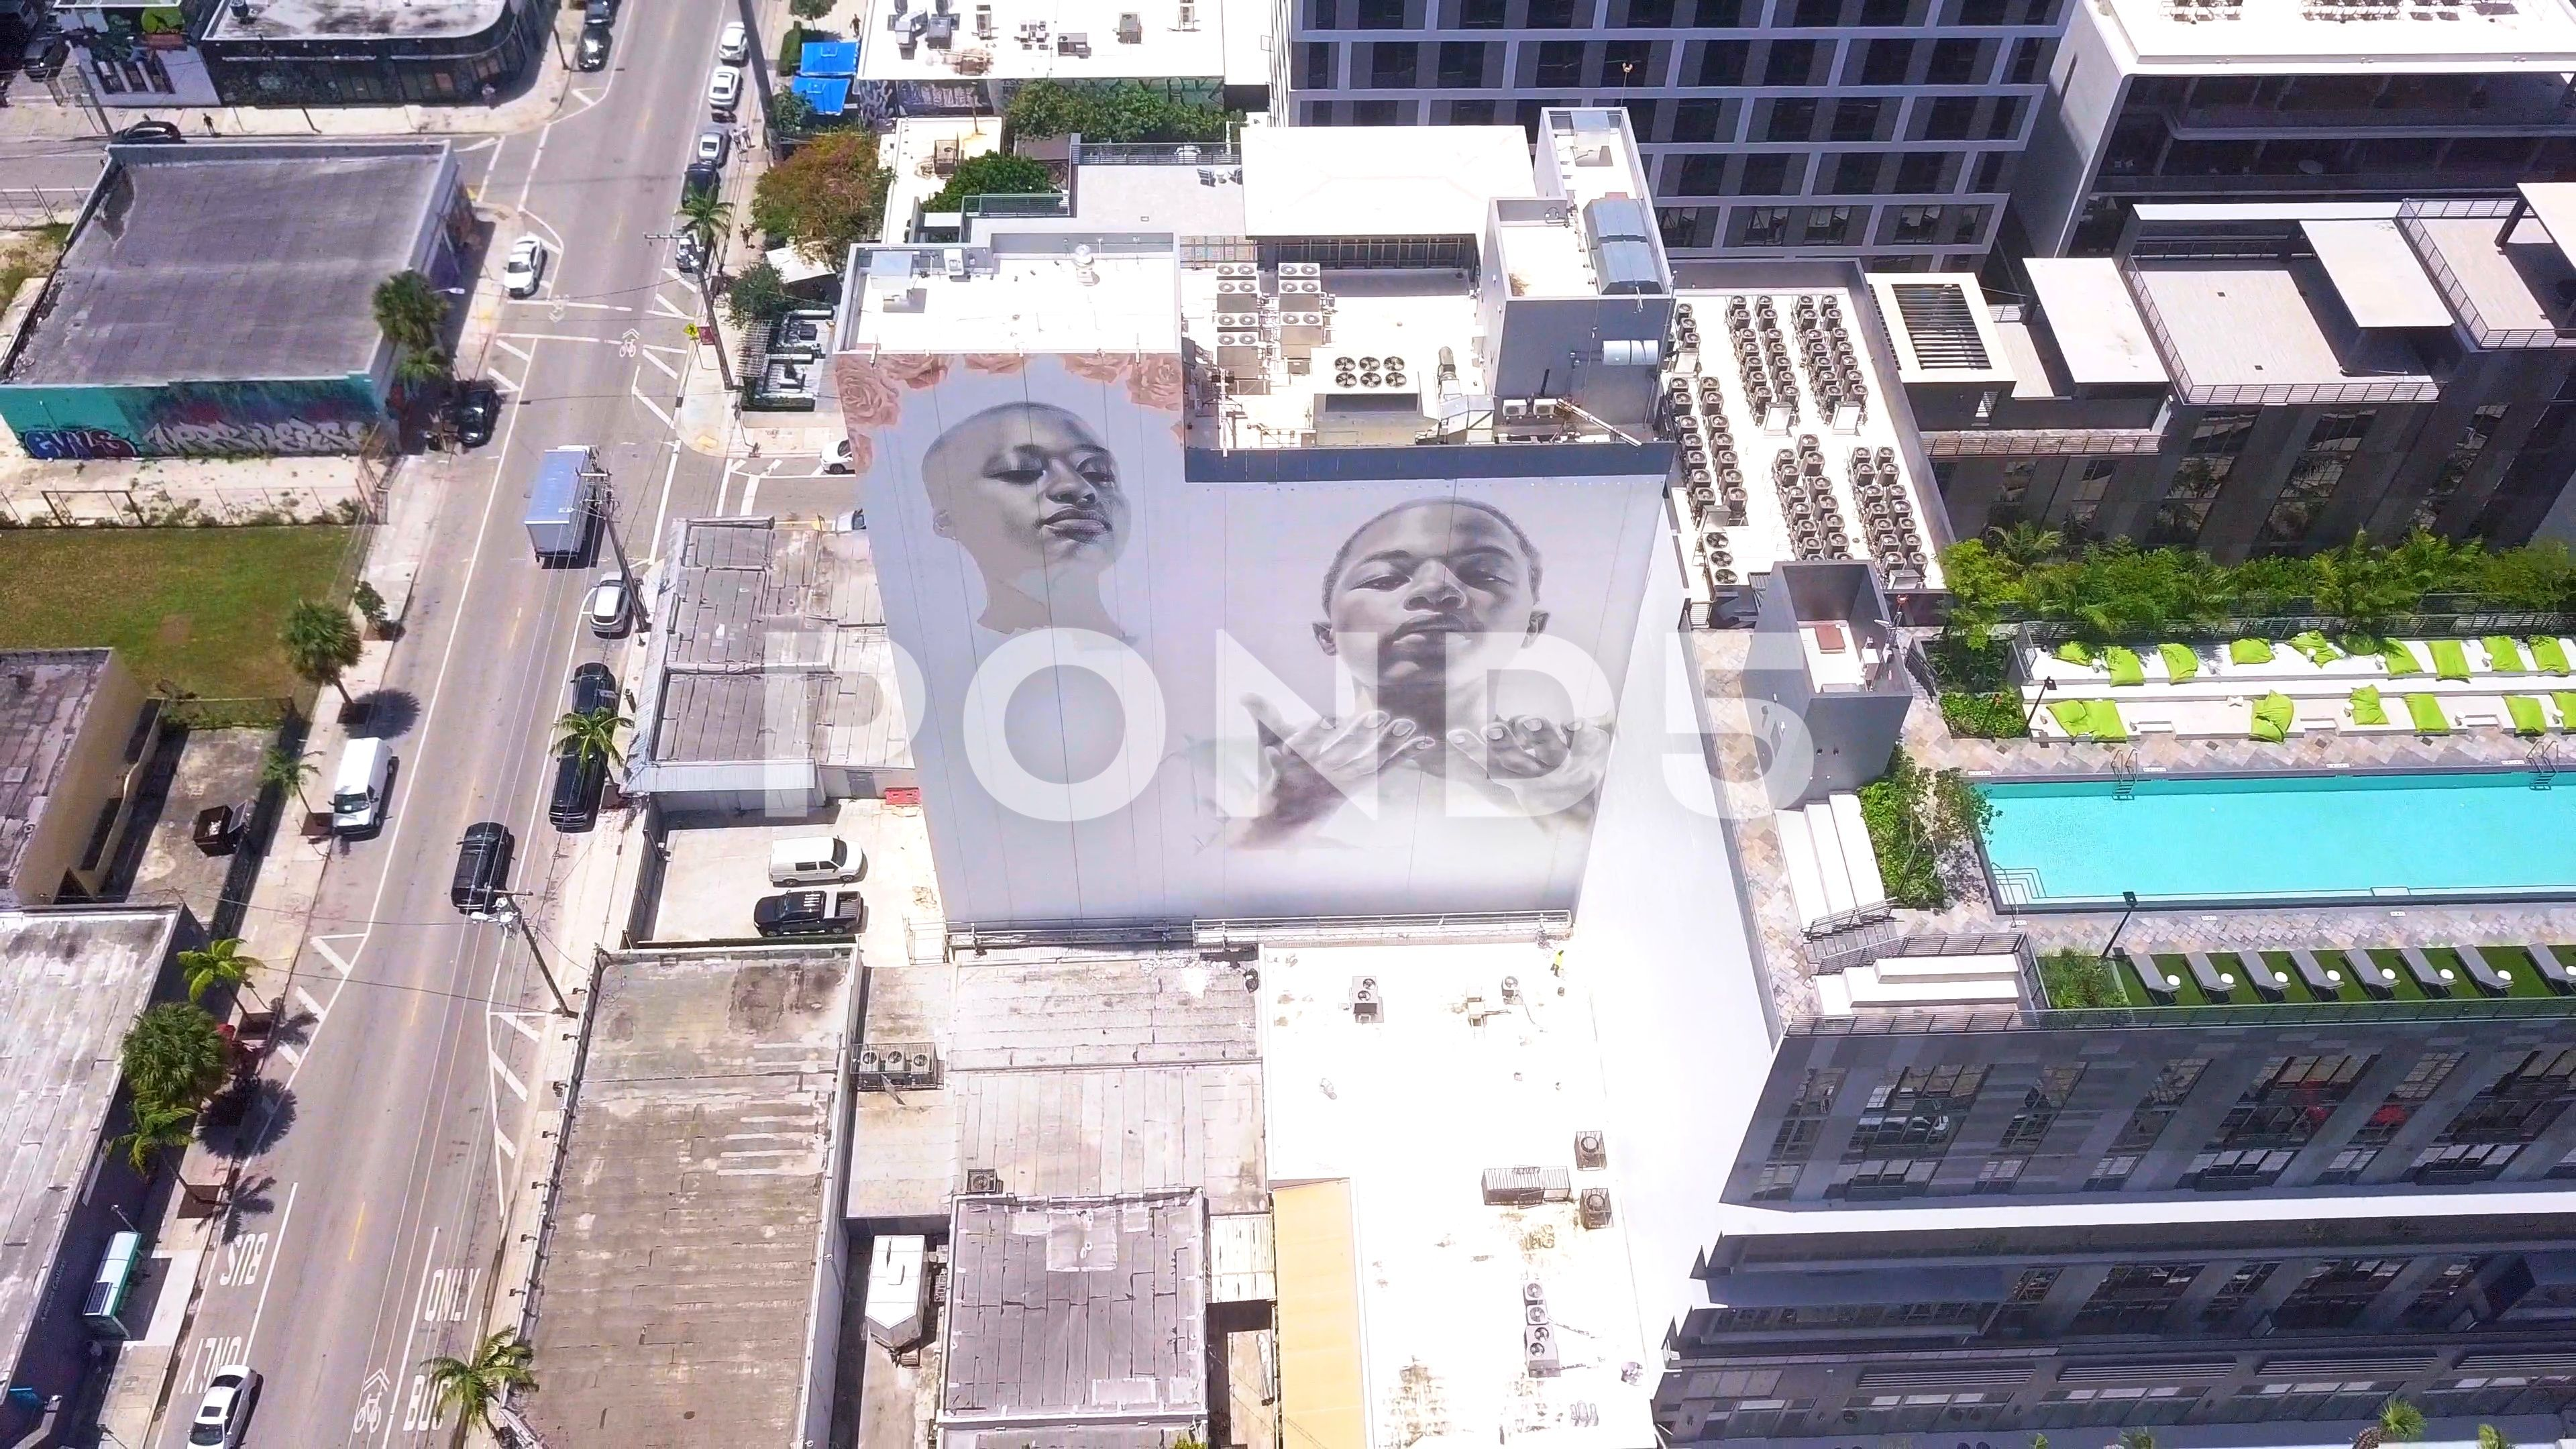 Miami View From The Drone Woodward Park Street Art Stock Footage Ad Drone Woodward Miami View Street Art Woodward Park Park